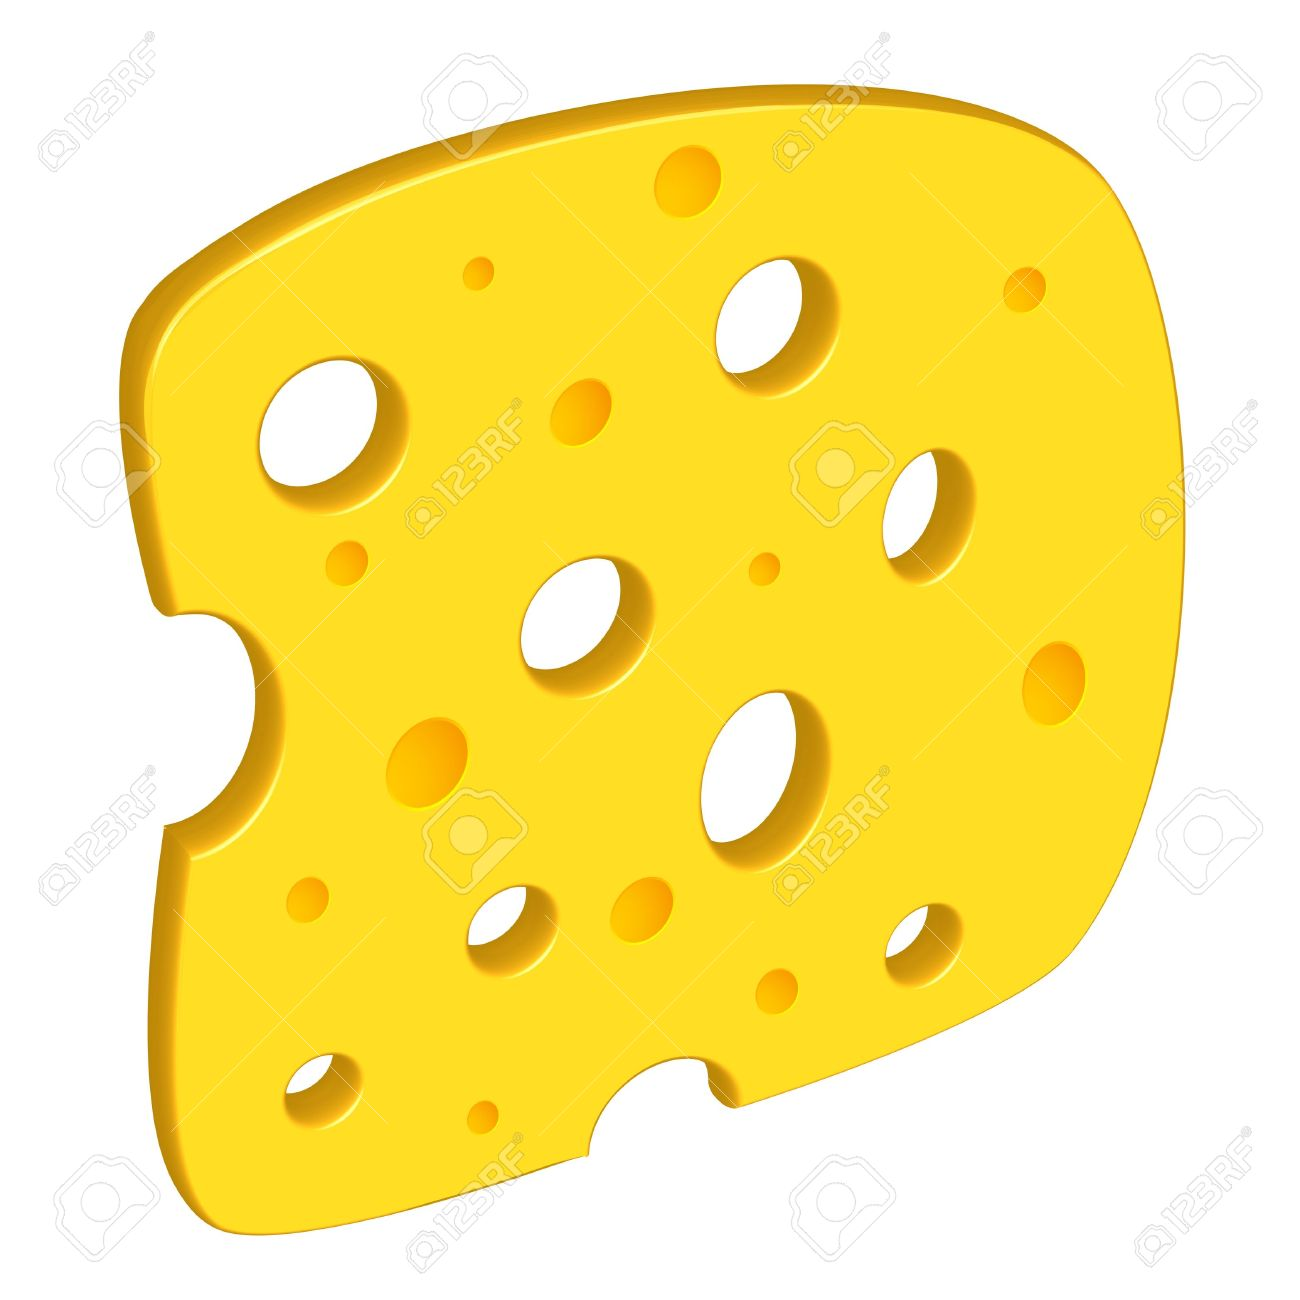 Cheese Clipart Against White Background, Abstract Art Illustration.